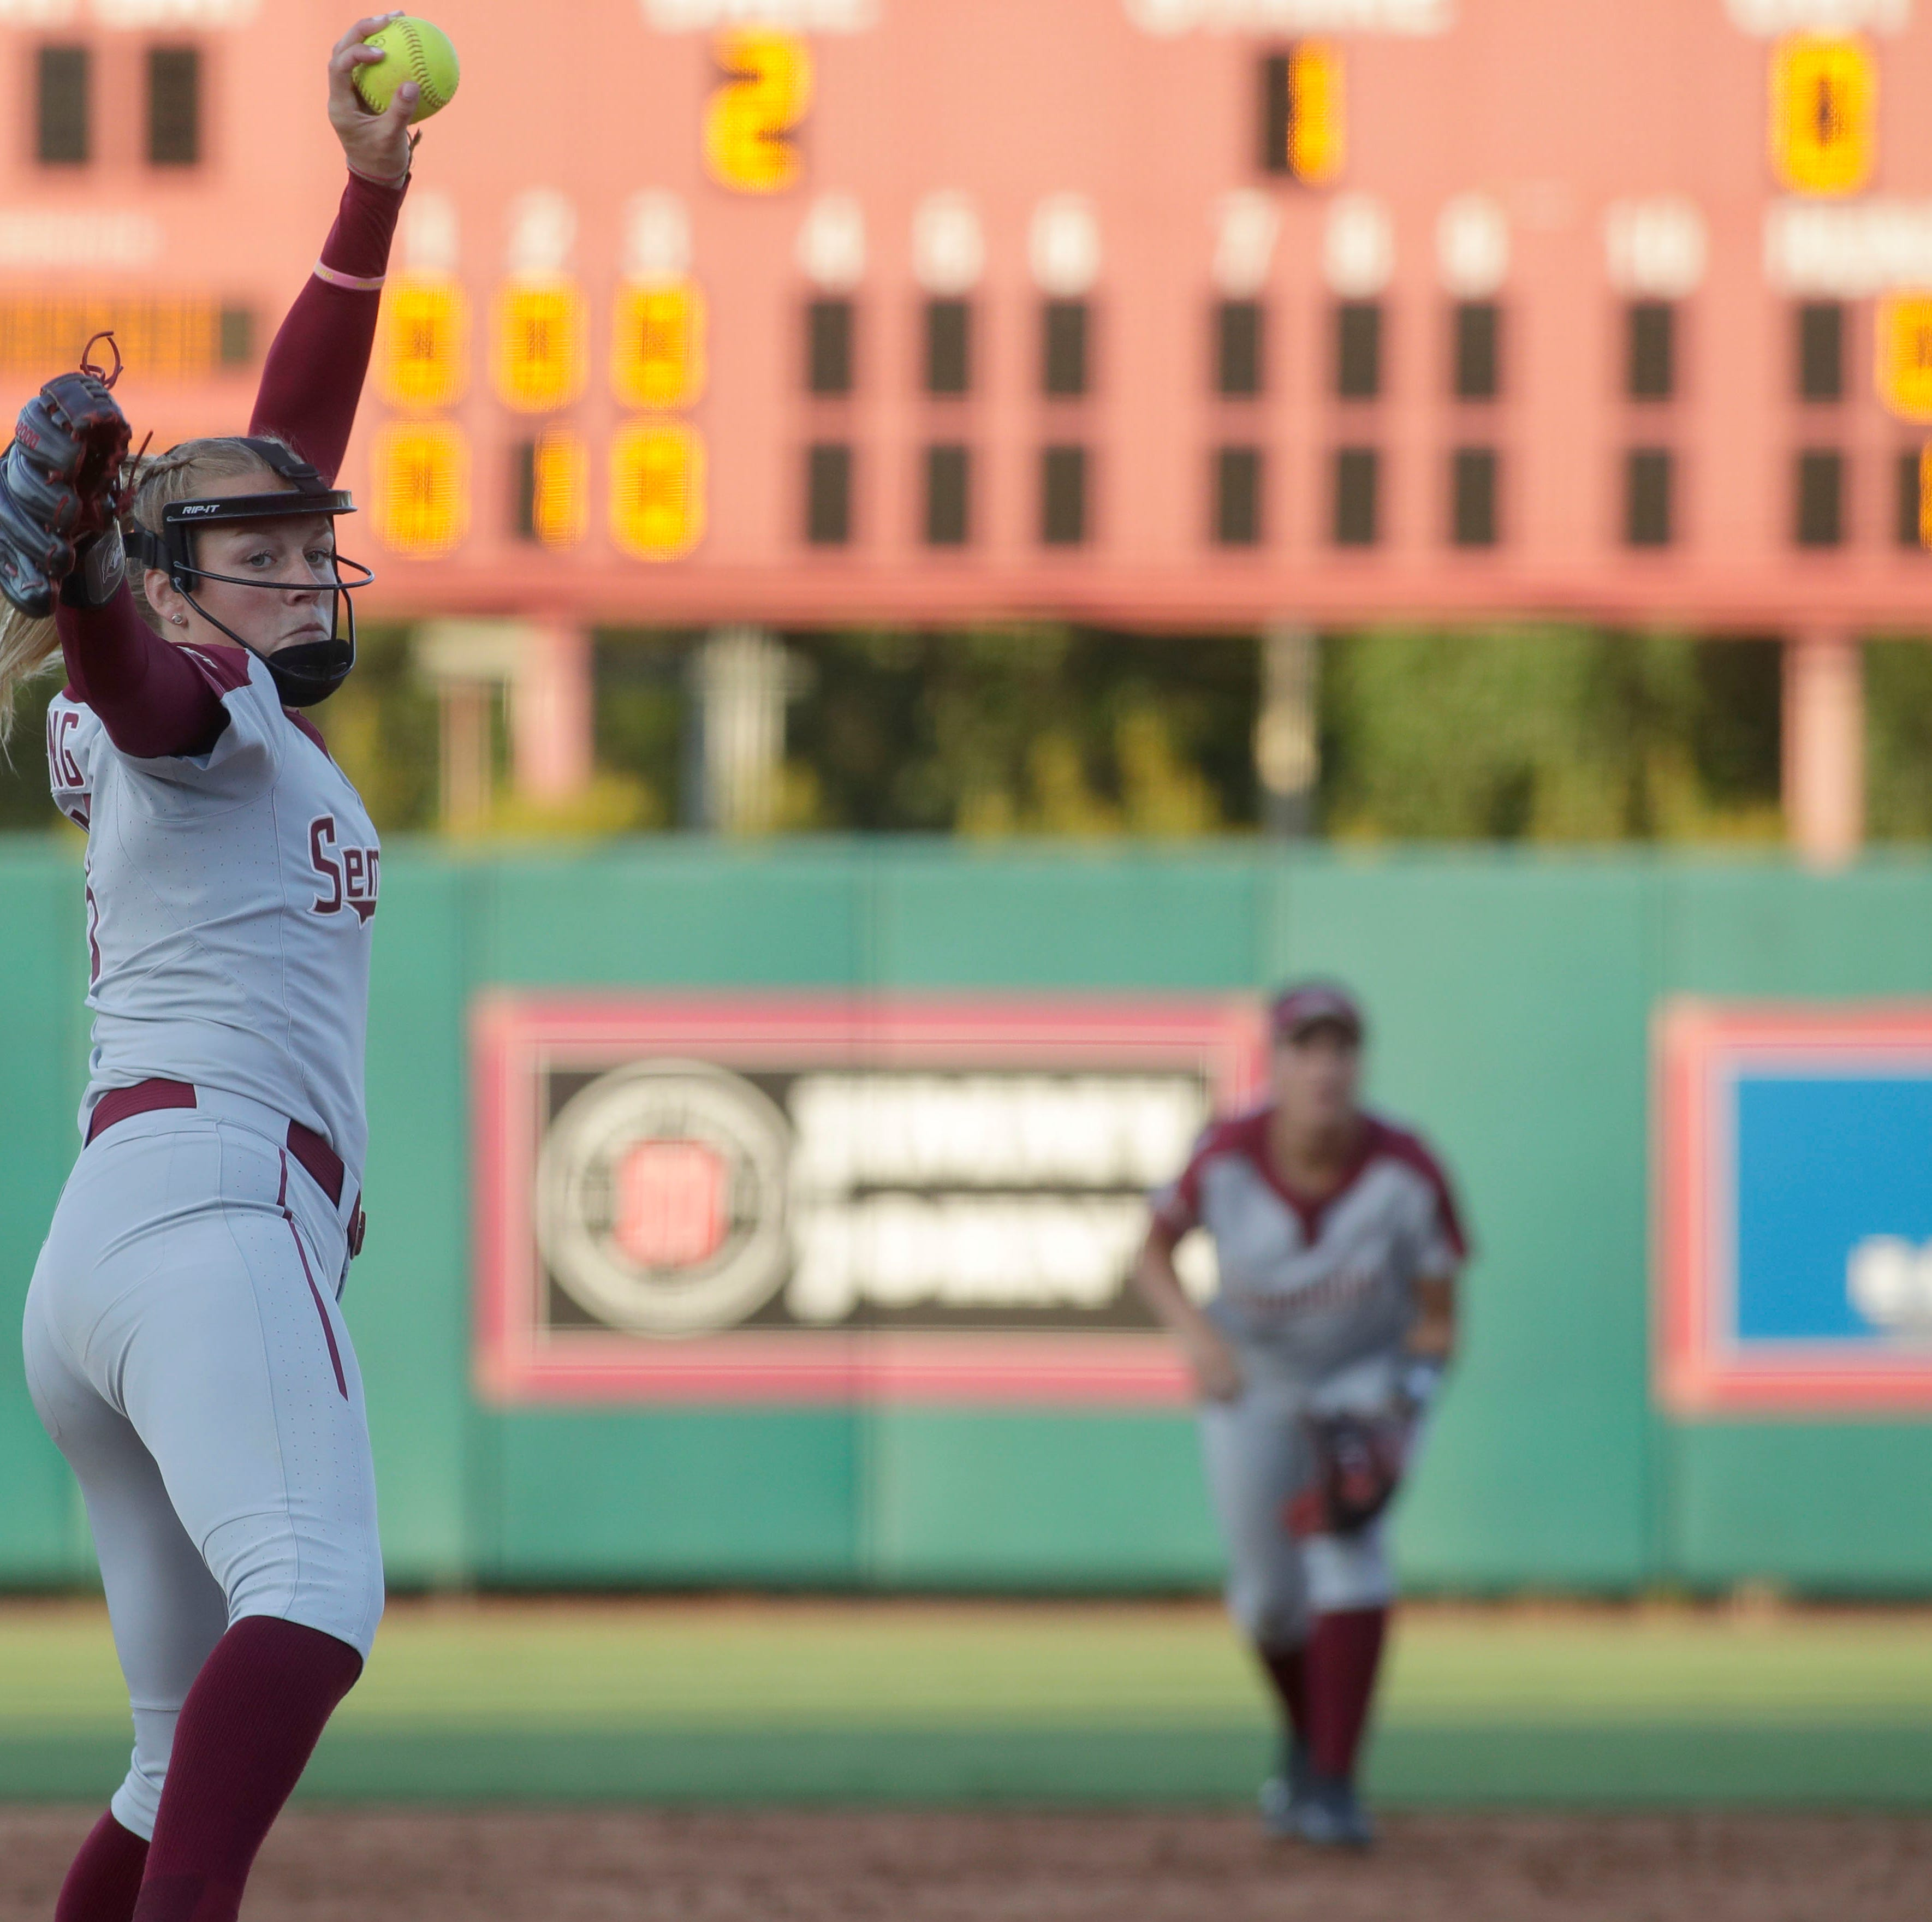 Florida State outdueled by Oklahoma State in Tallahassee Super Regional opener